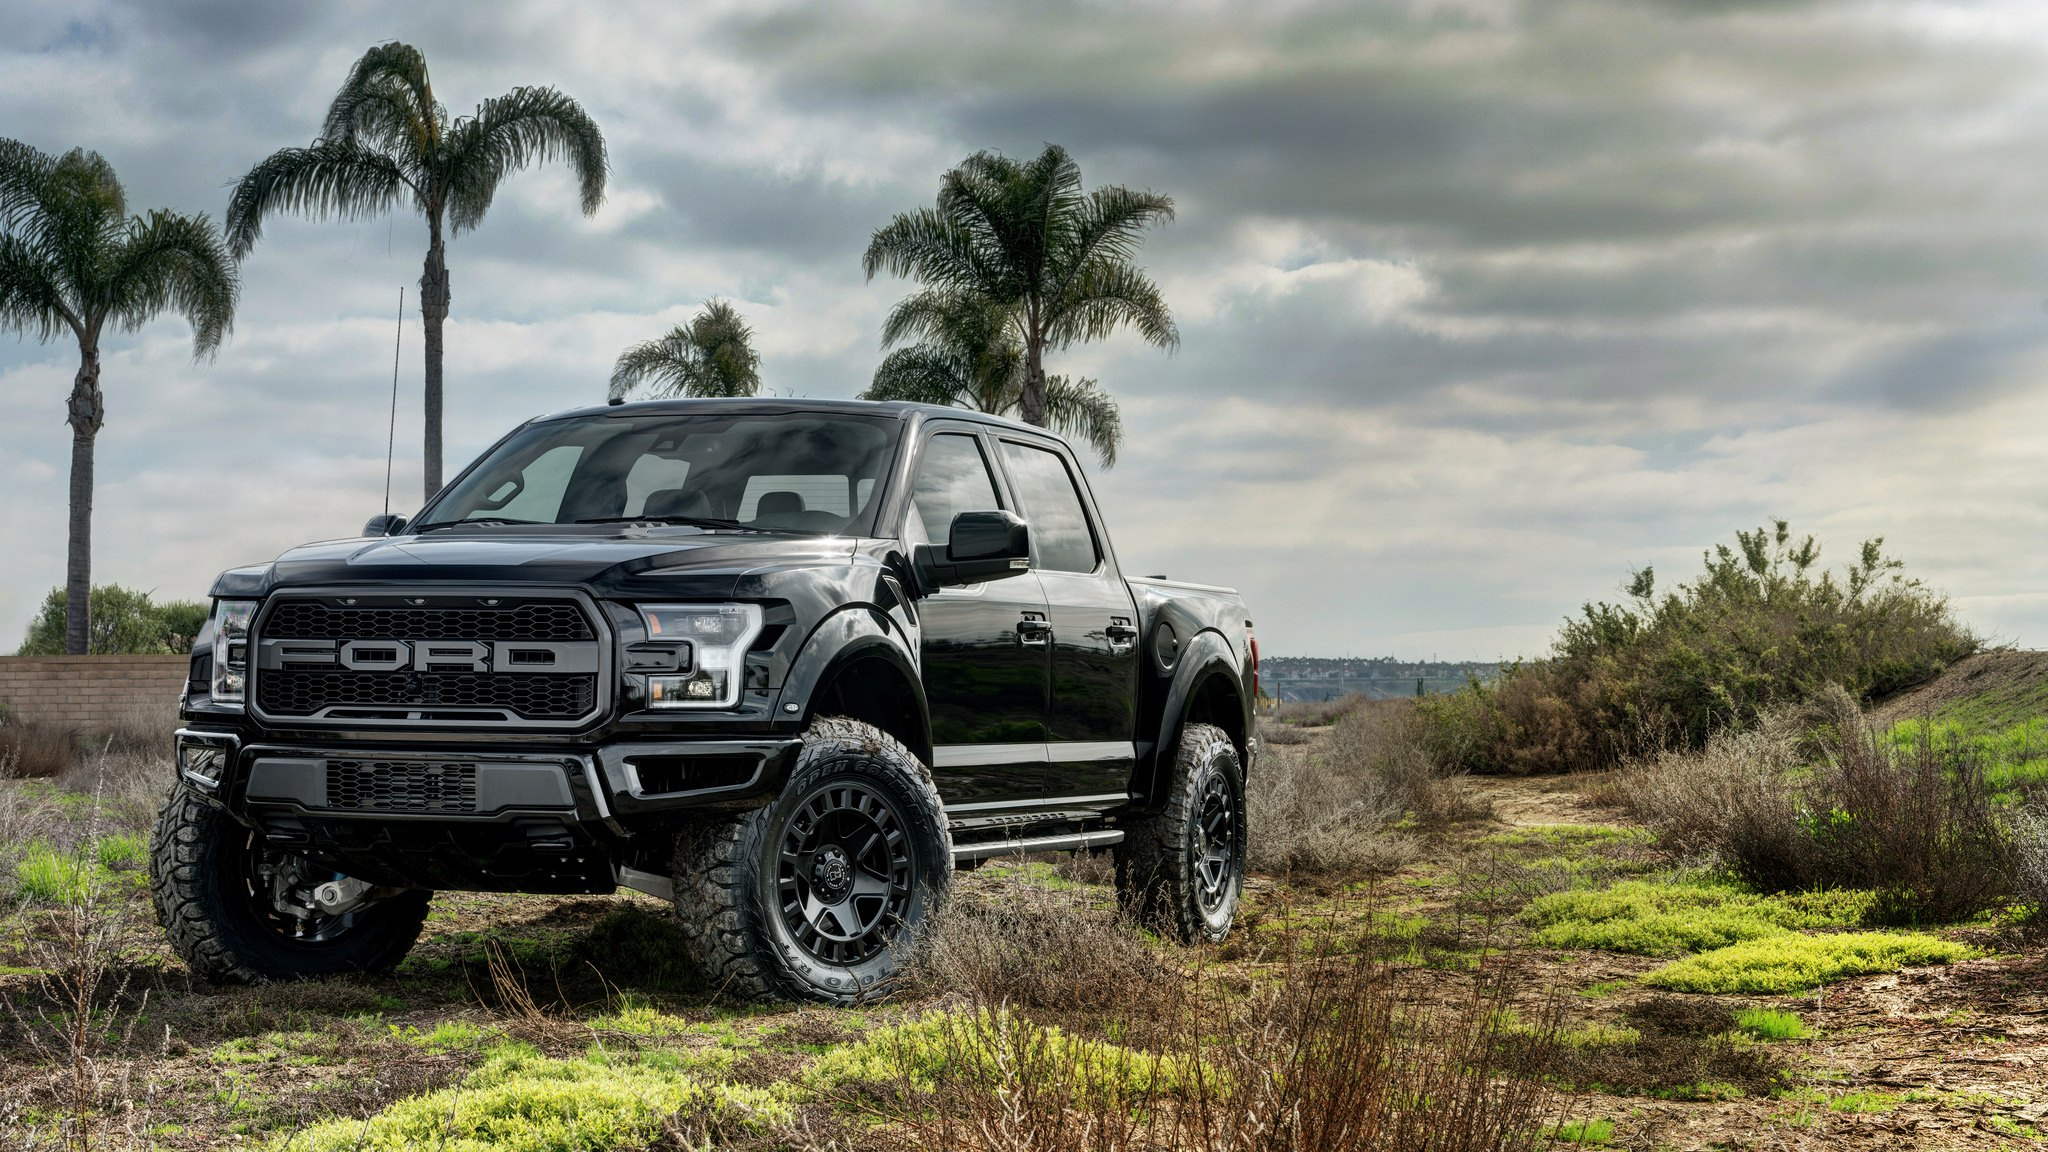 2017 Ford F150 Raptor With Black Rhino Offroad Rims Photo By Tsw